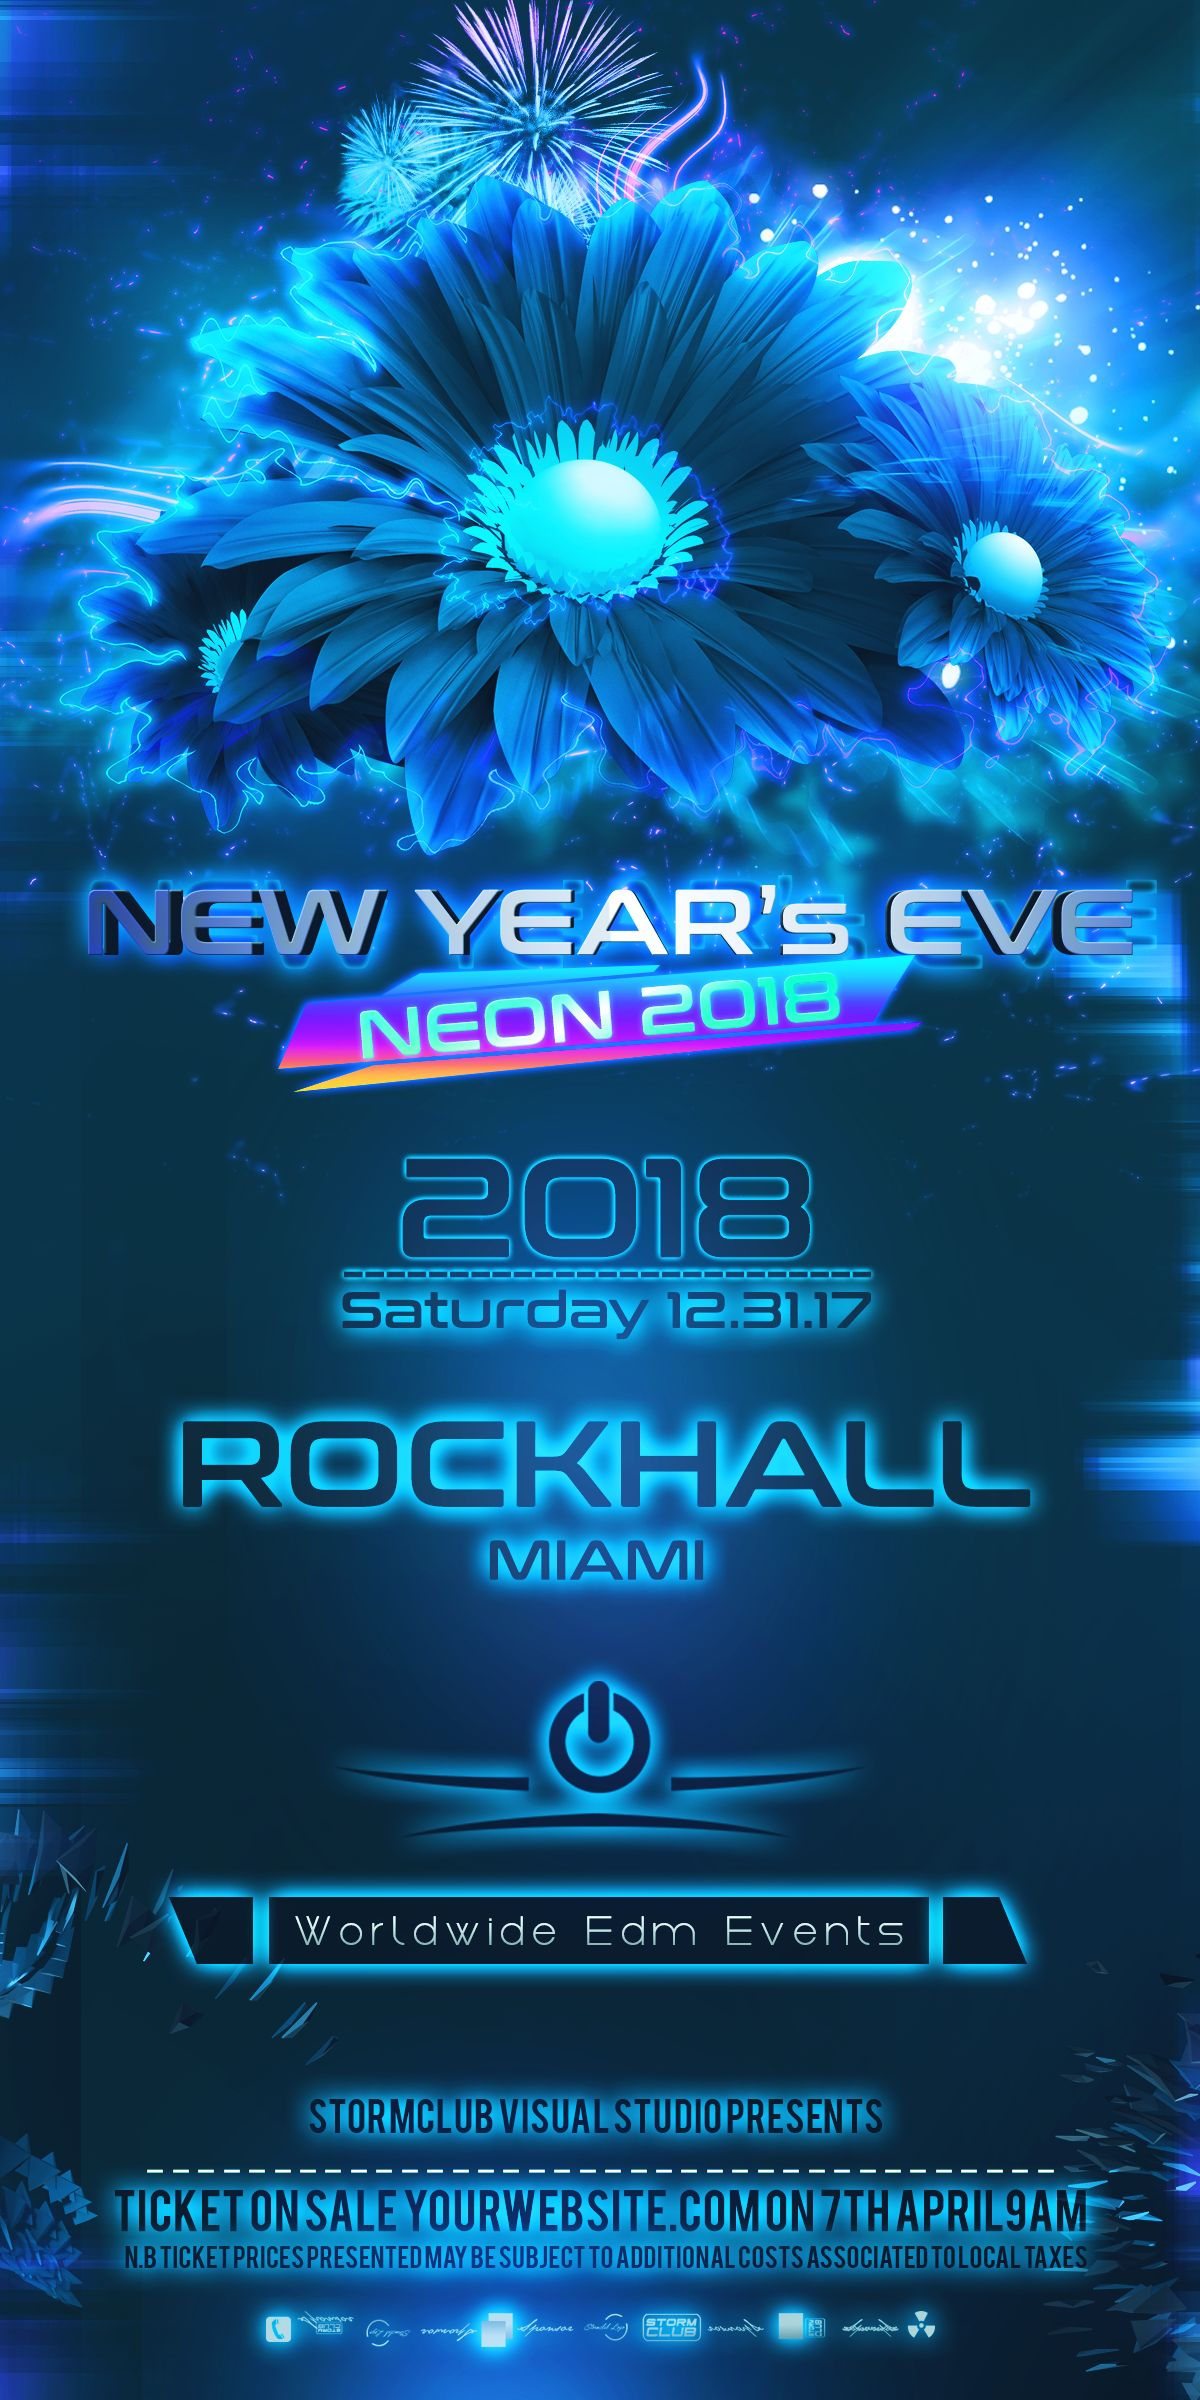 New Years Eve Web Banner Screenshot 2